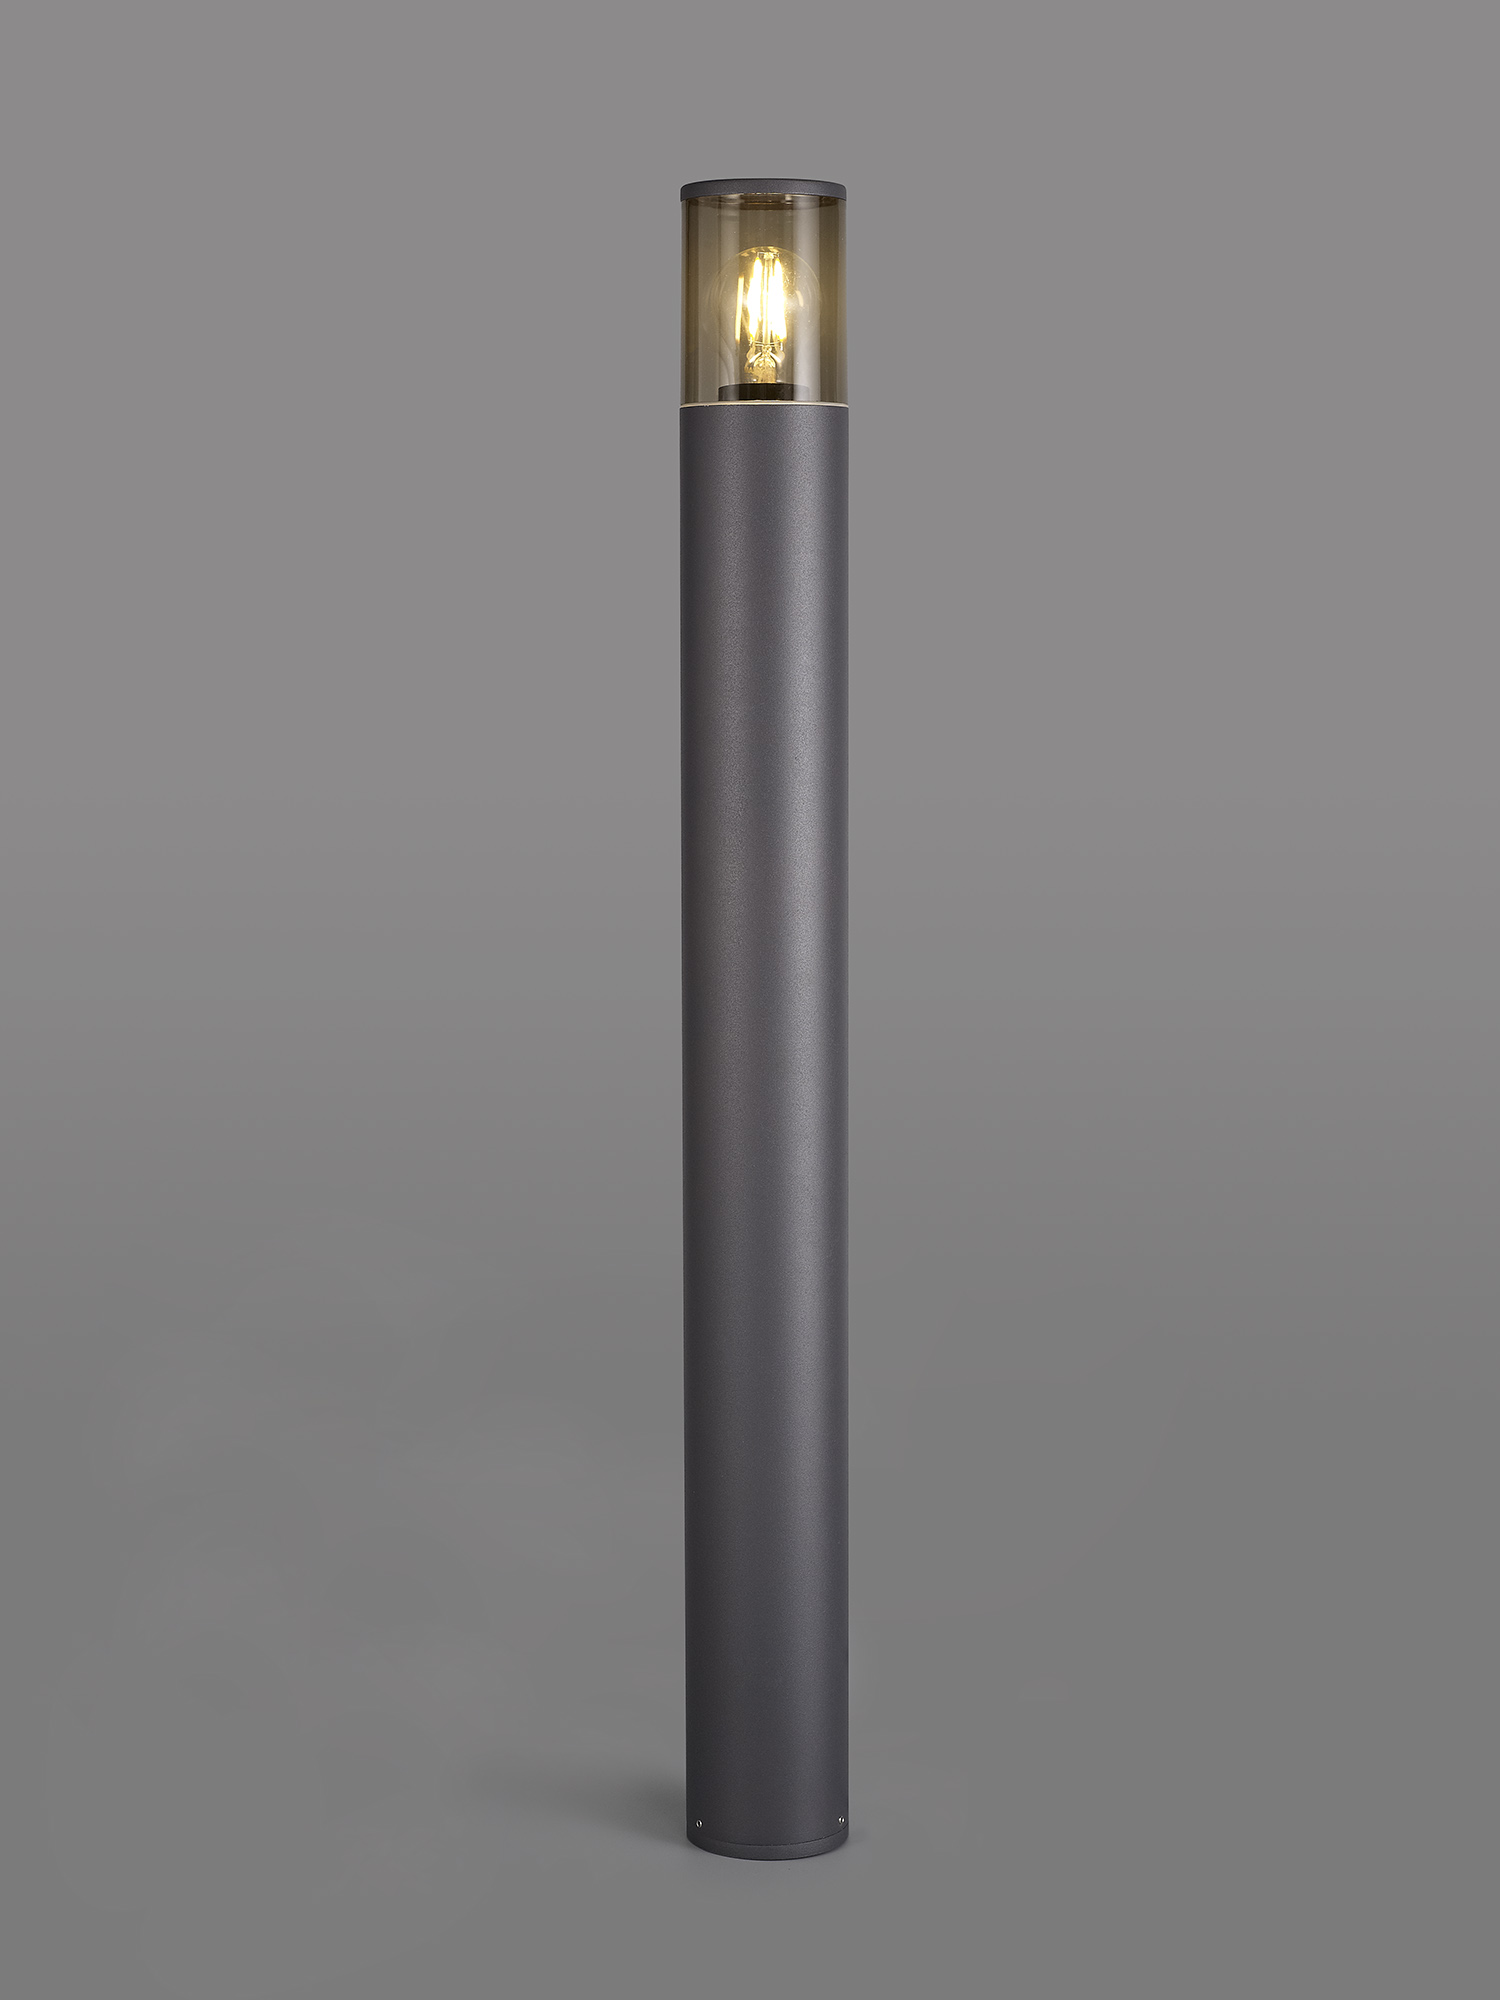 90cm Post Lamp 1 x E27, IP54, 2yrs Warranty